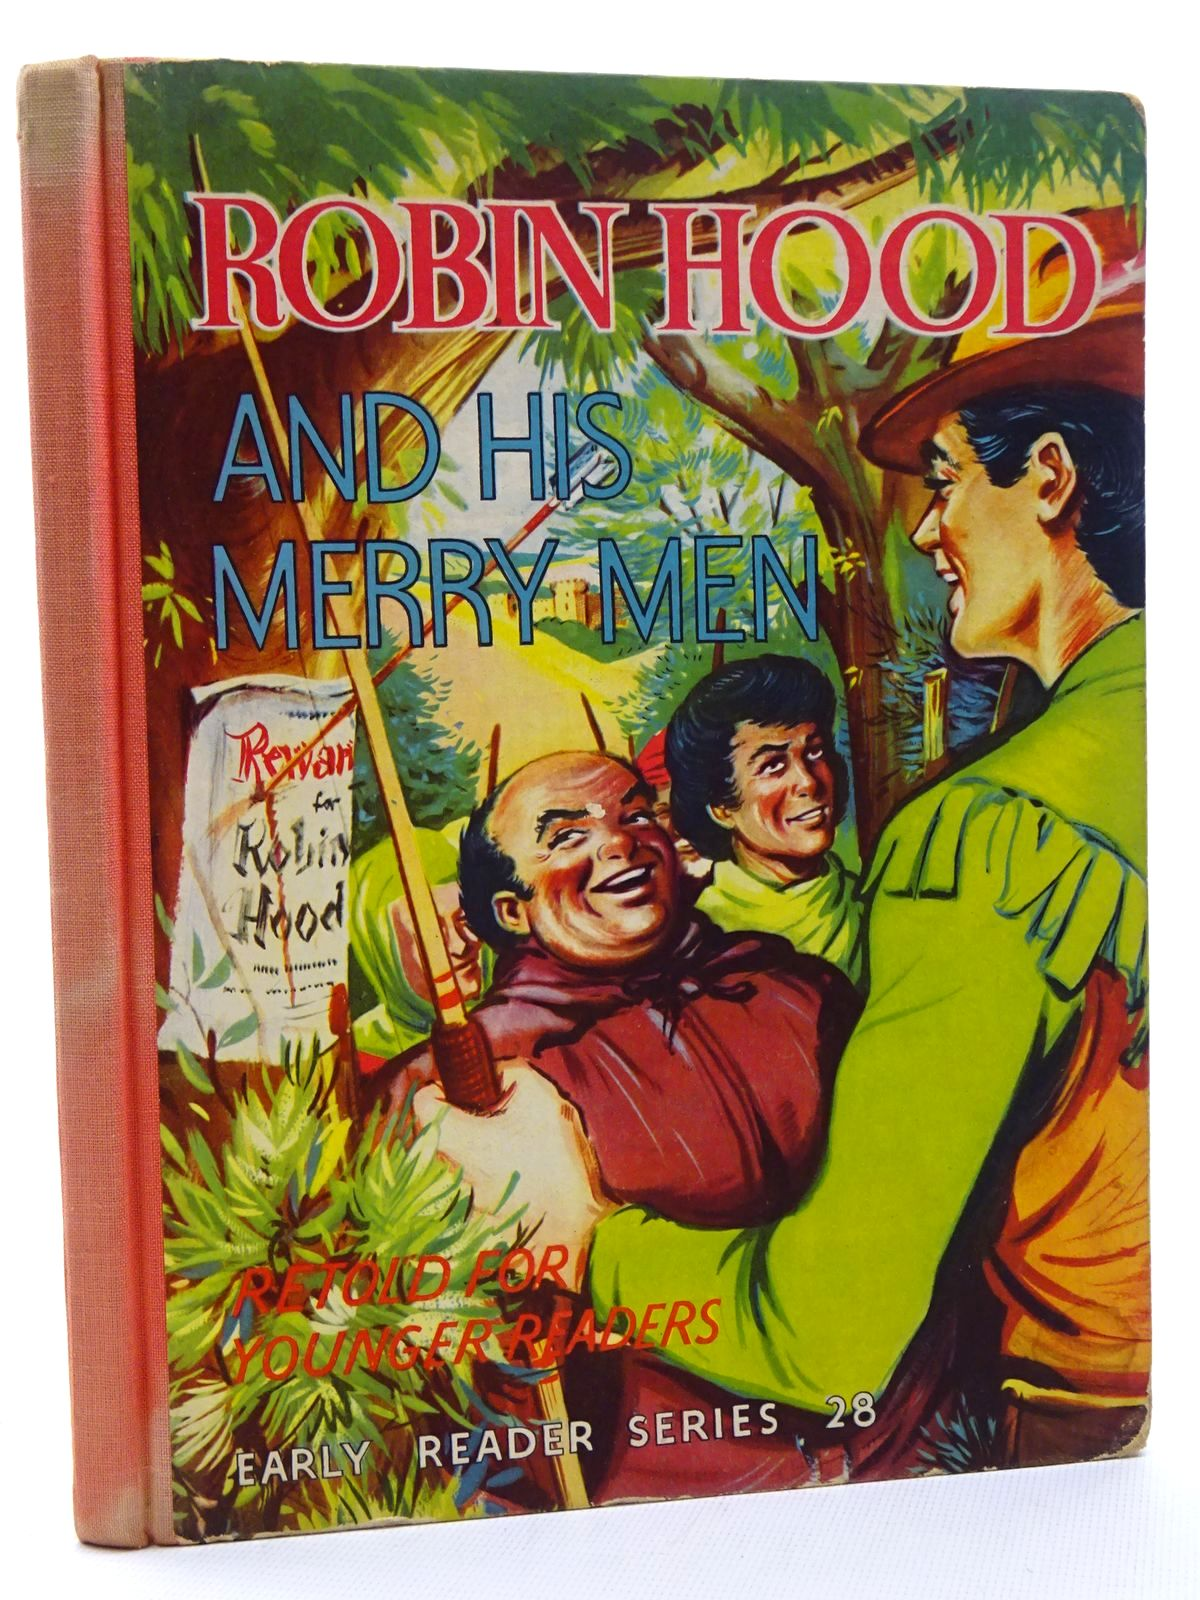 Photo of ROBIN HOOD AND HIS MERRY MEN published by Hampster Books (STOCK CODE: 1815994)  for sale by Stella & Rose's Books